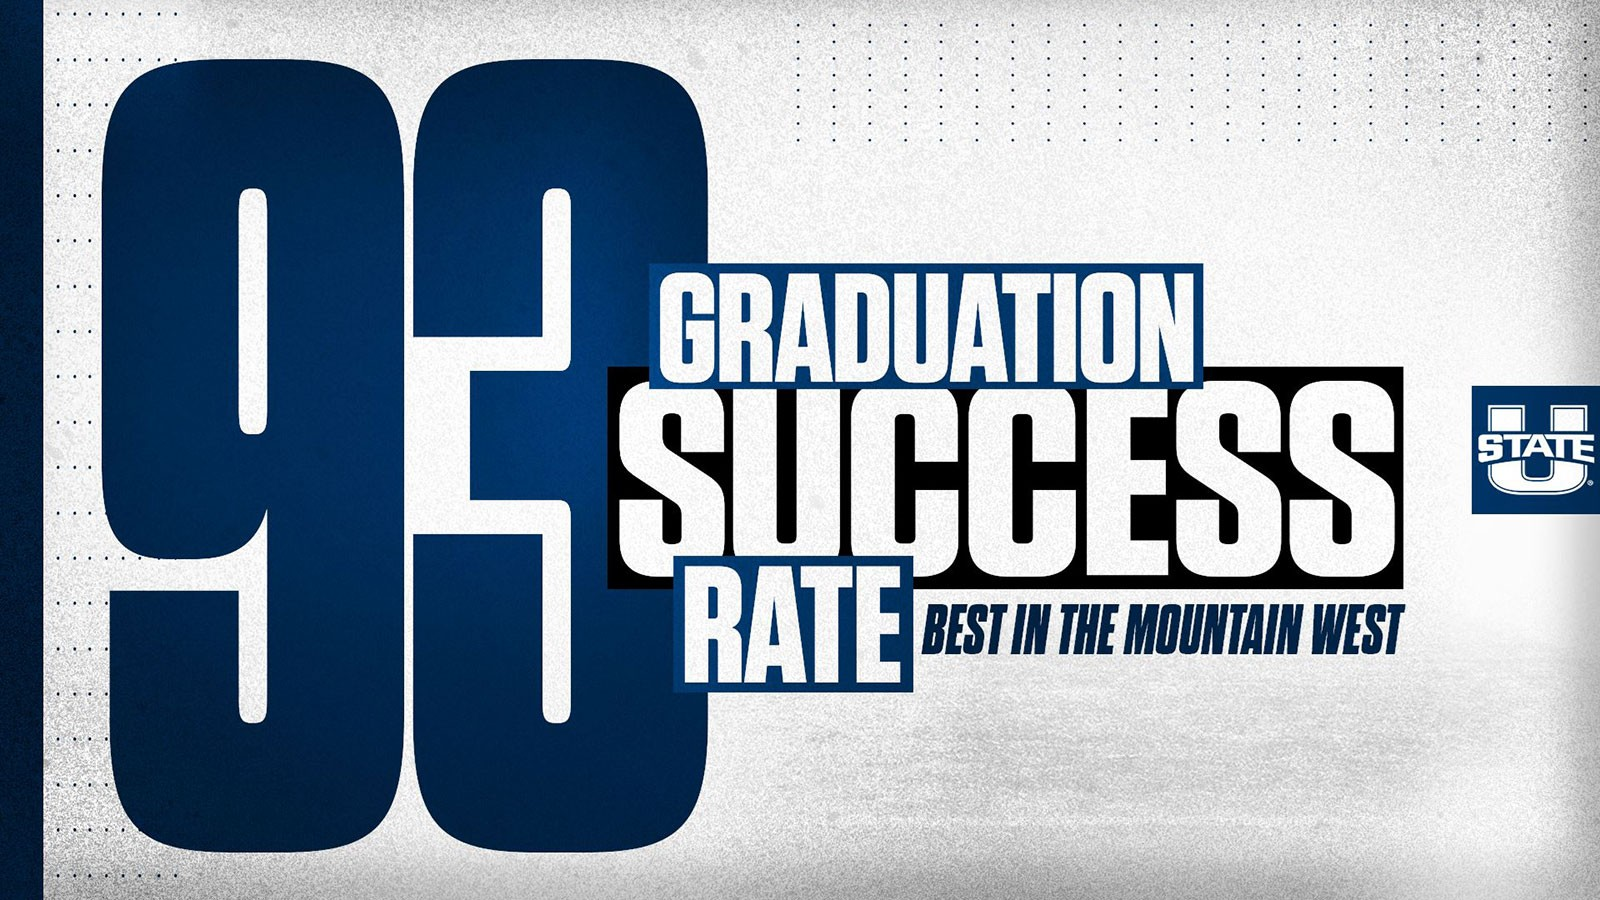 Words: Best in the Mountain West 93% Graduation Success Rate.